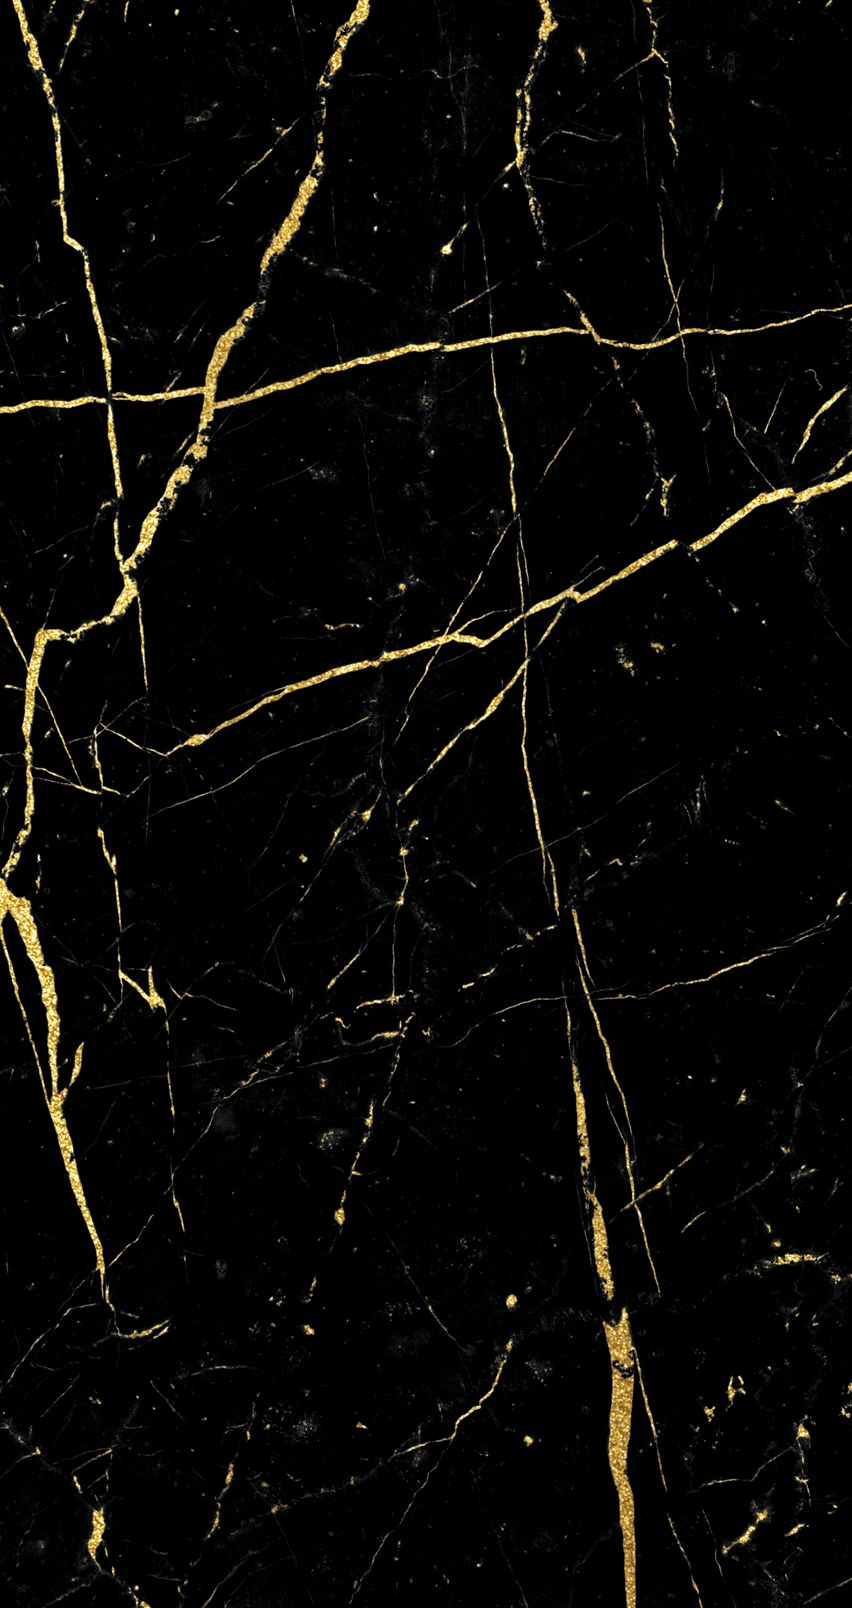 black and gold marble wallpaper  Free Marble Wallpapers by Leysa Flores via www.leysaflores.com ...